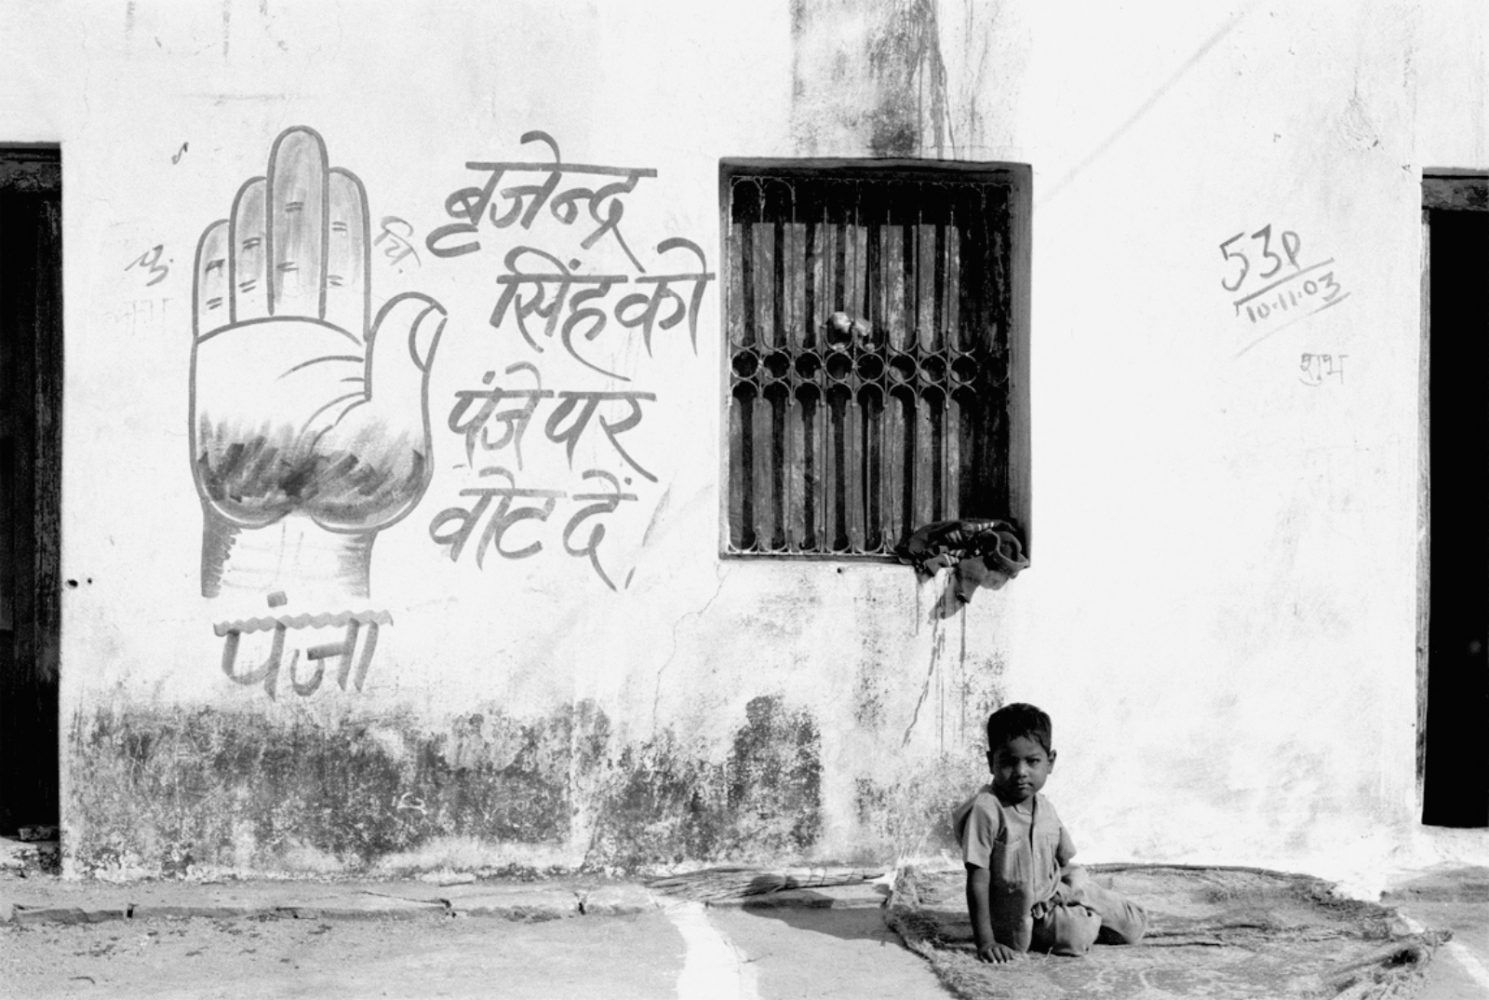 Boy by Drawing of Hand on Wall, Okhra, India, November 2003